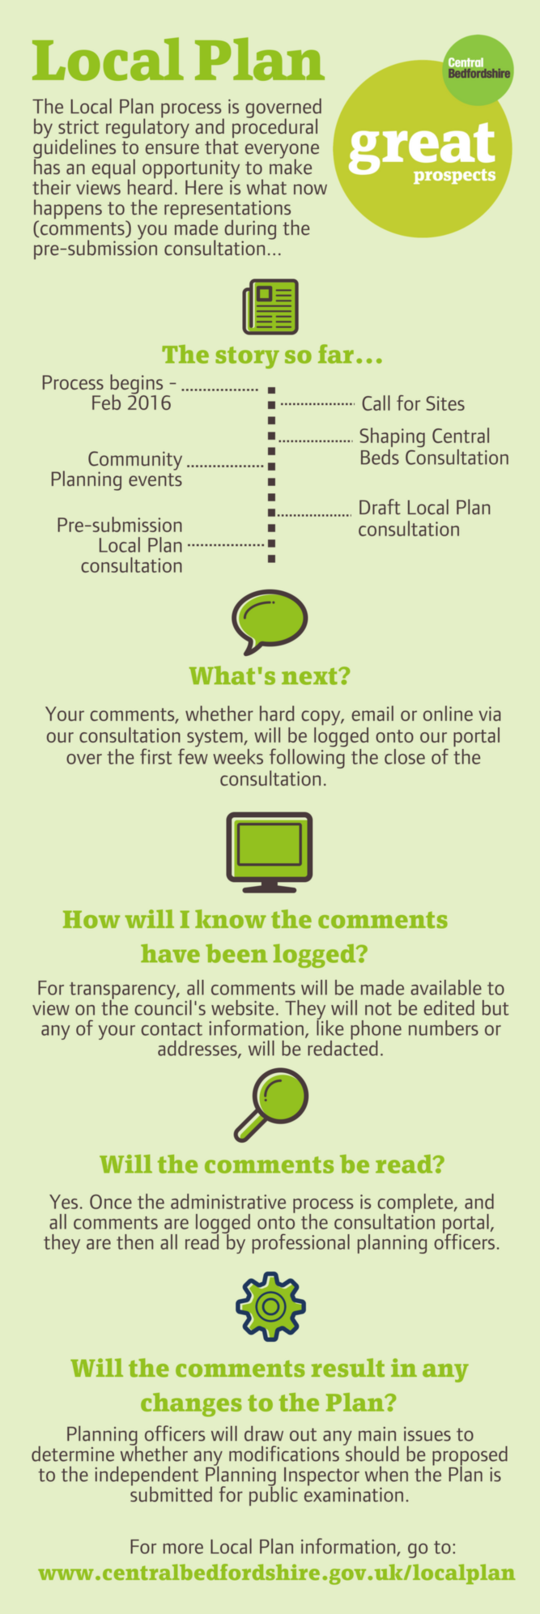 Timeline infographic about what happens to your Local Plan representation